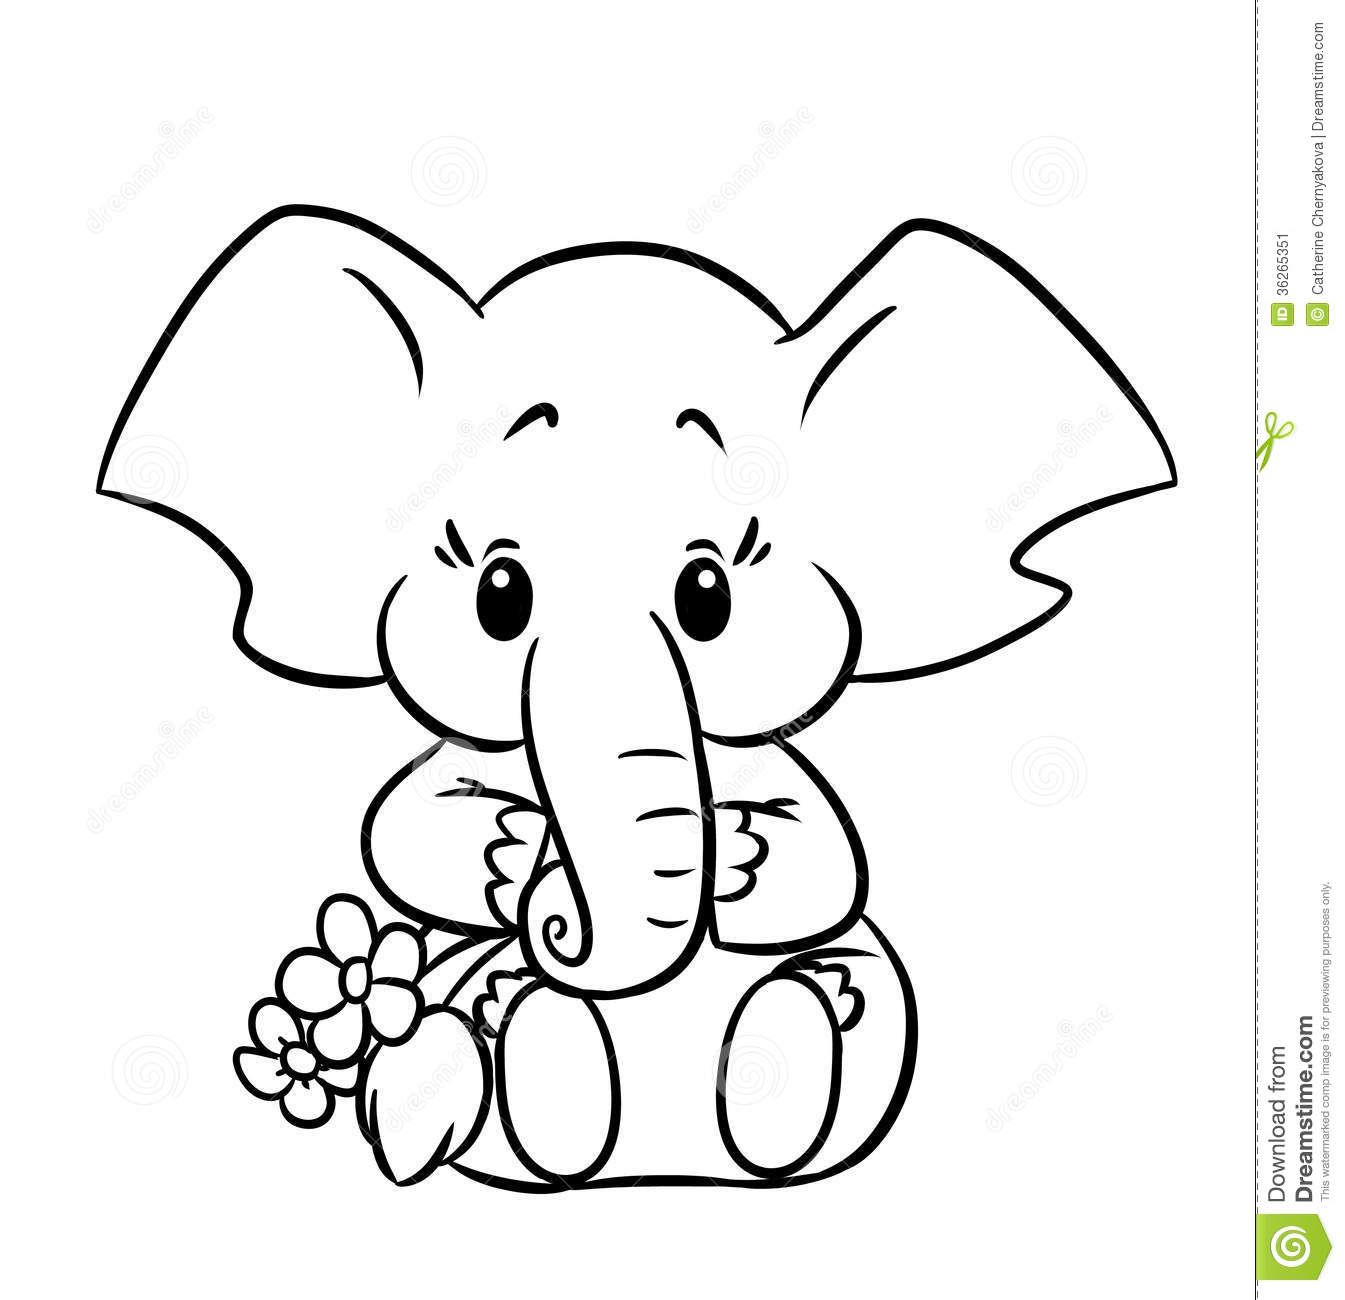 Elephant coloring pages free - Elephant Coloring Pages Pinterest Tumblr Google Yahoo Imgur Wallpapers Elephant Coloring Pages Images